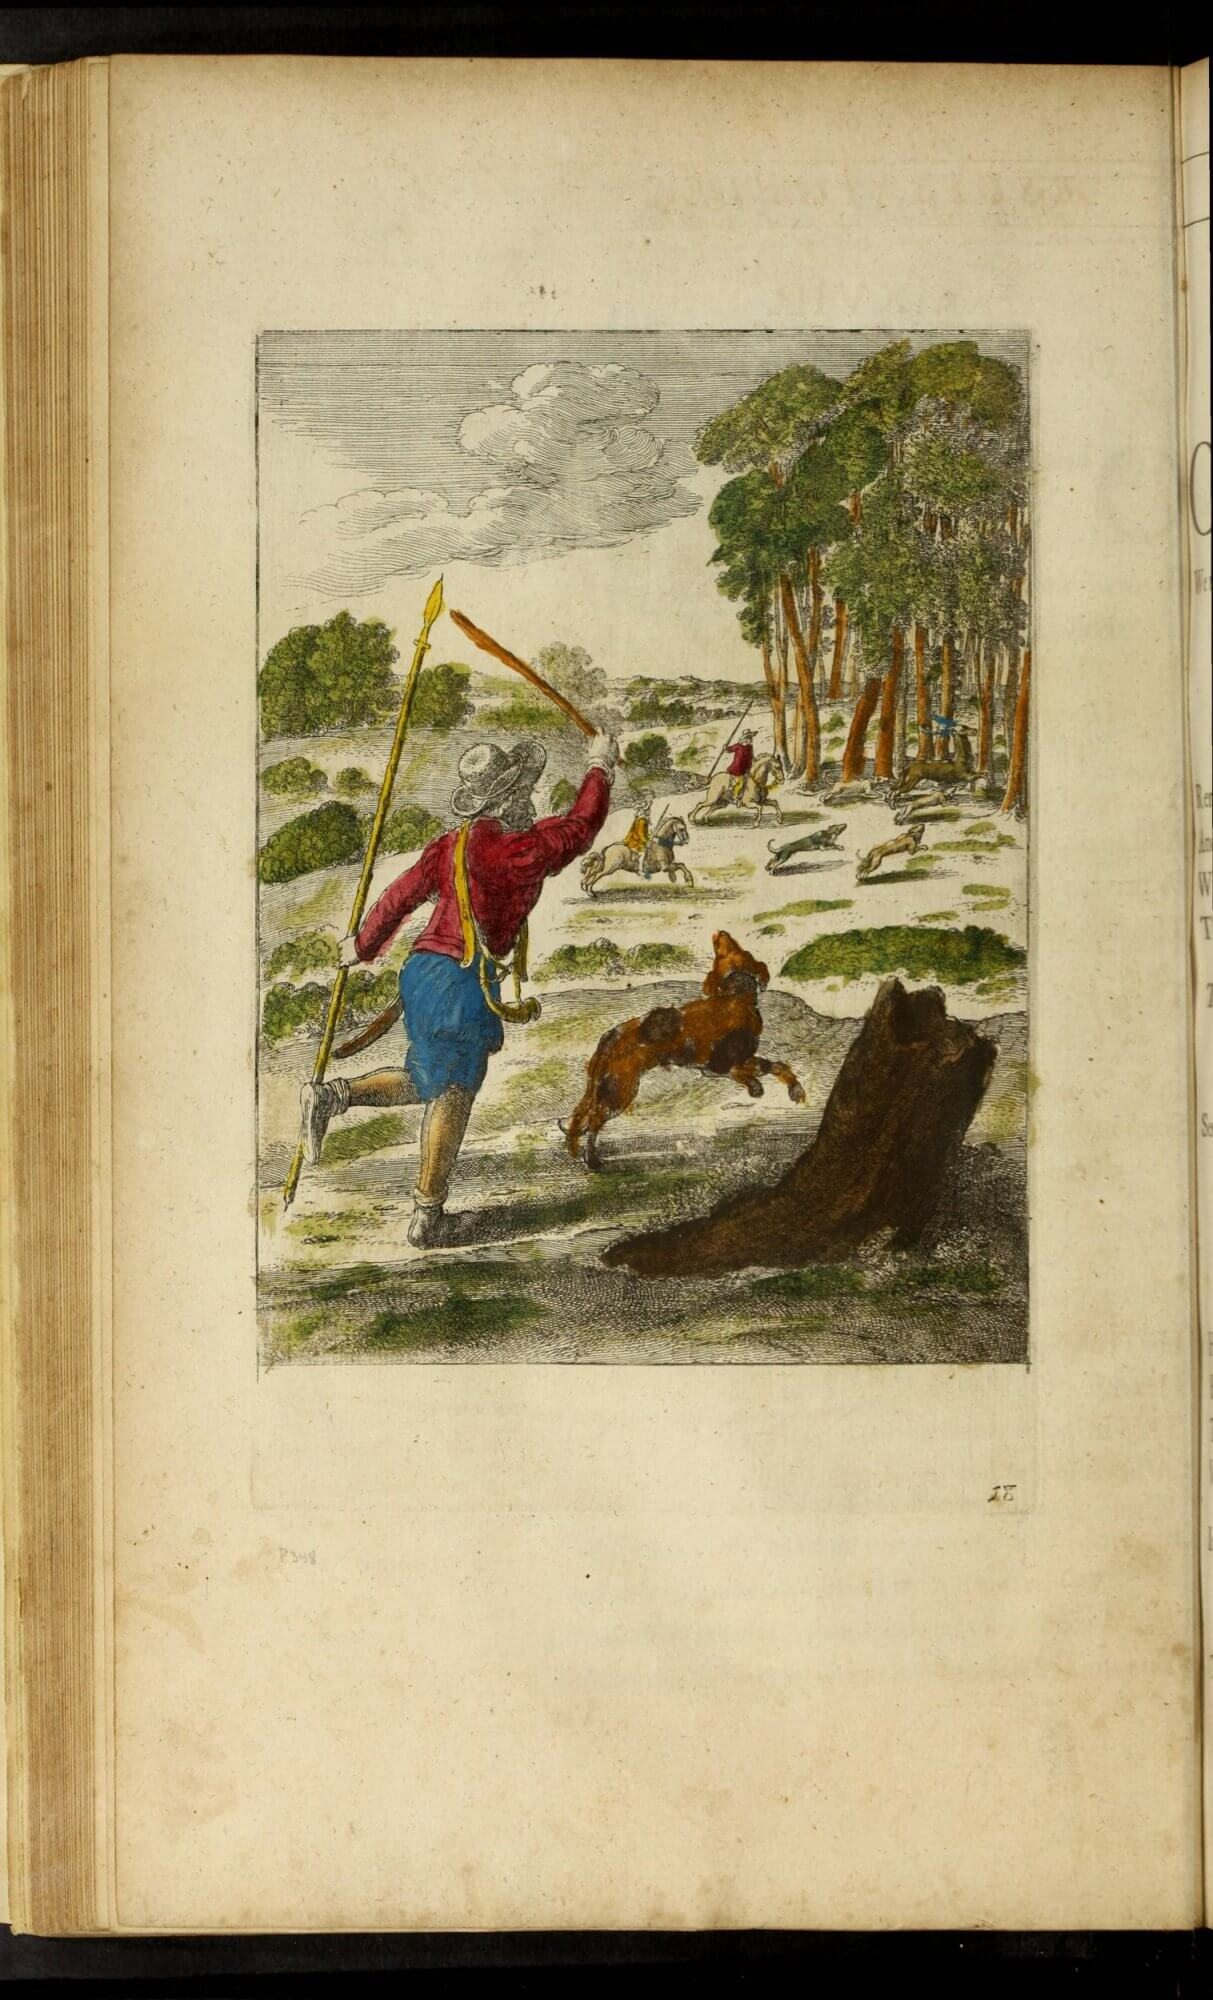 Some previous owner has colored in the illustration corresponding to the fable of the Hound and his Master. Perhaps this story was a favorite––no other print in the book was treated to full color.